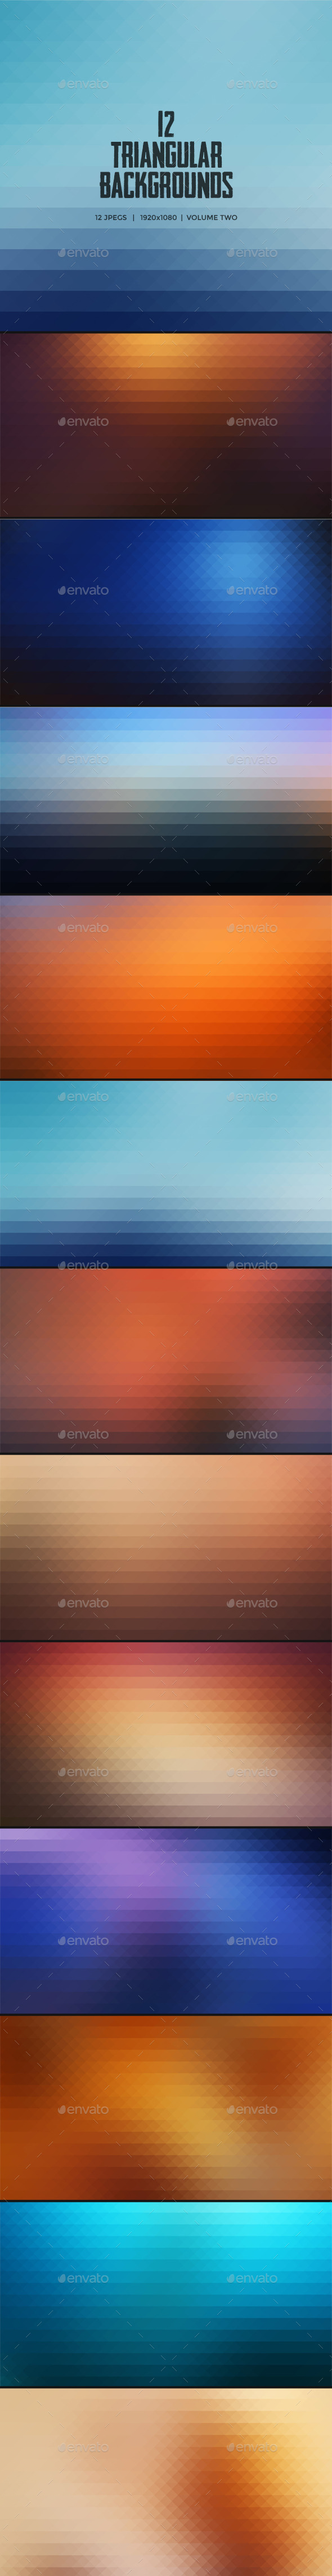 GraphicRiver Triangle Backgrounds Volume Two 9631779